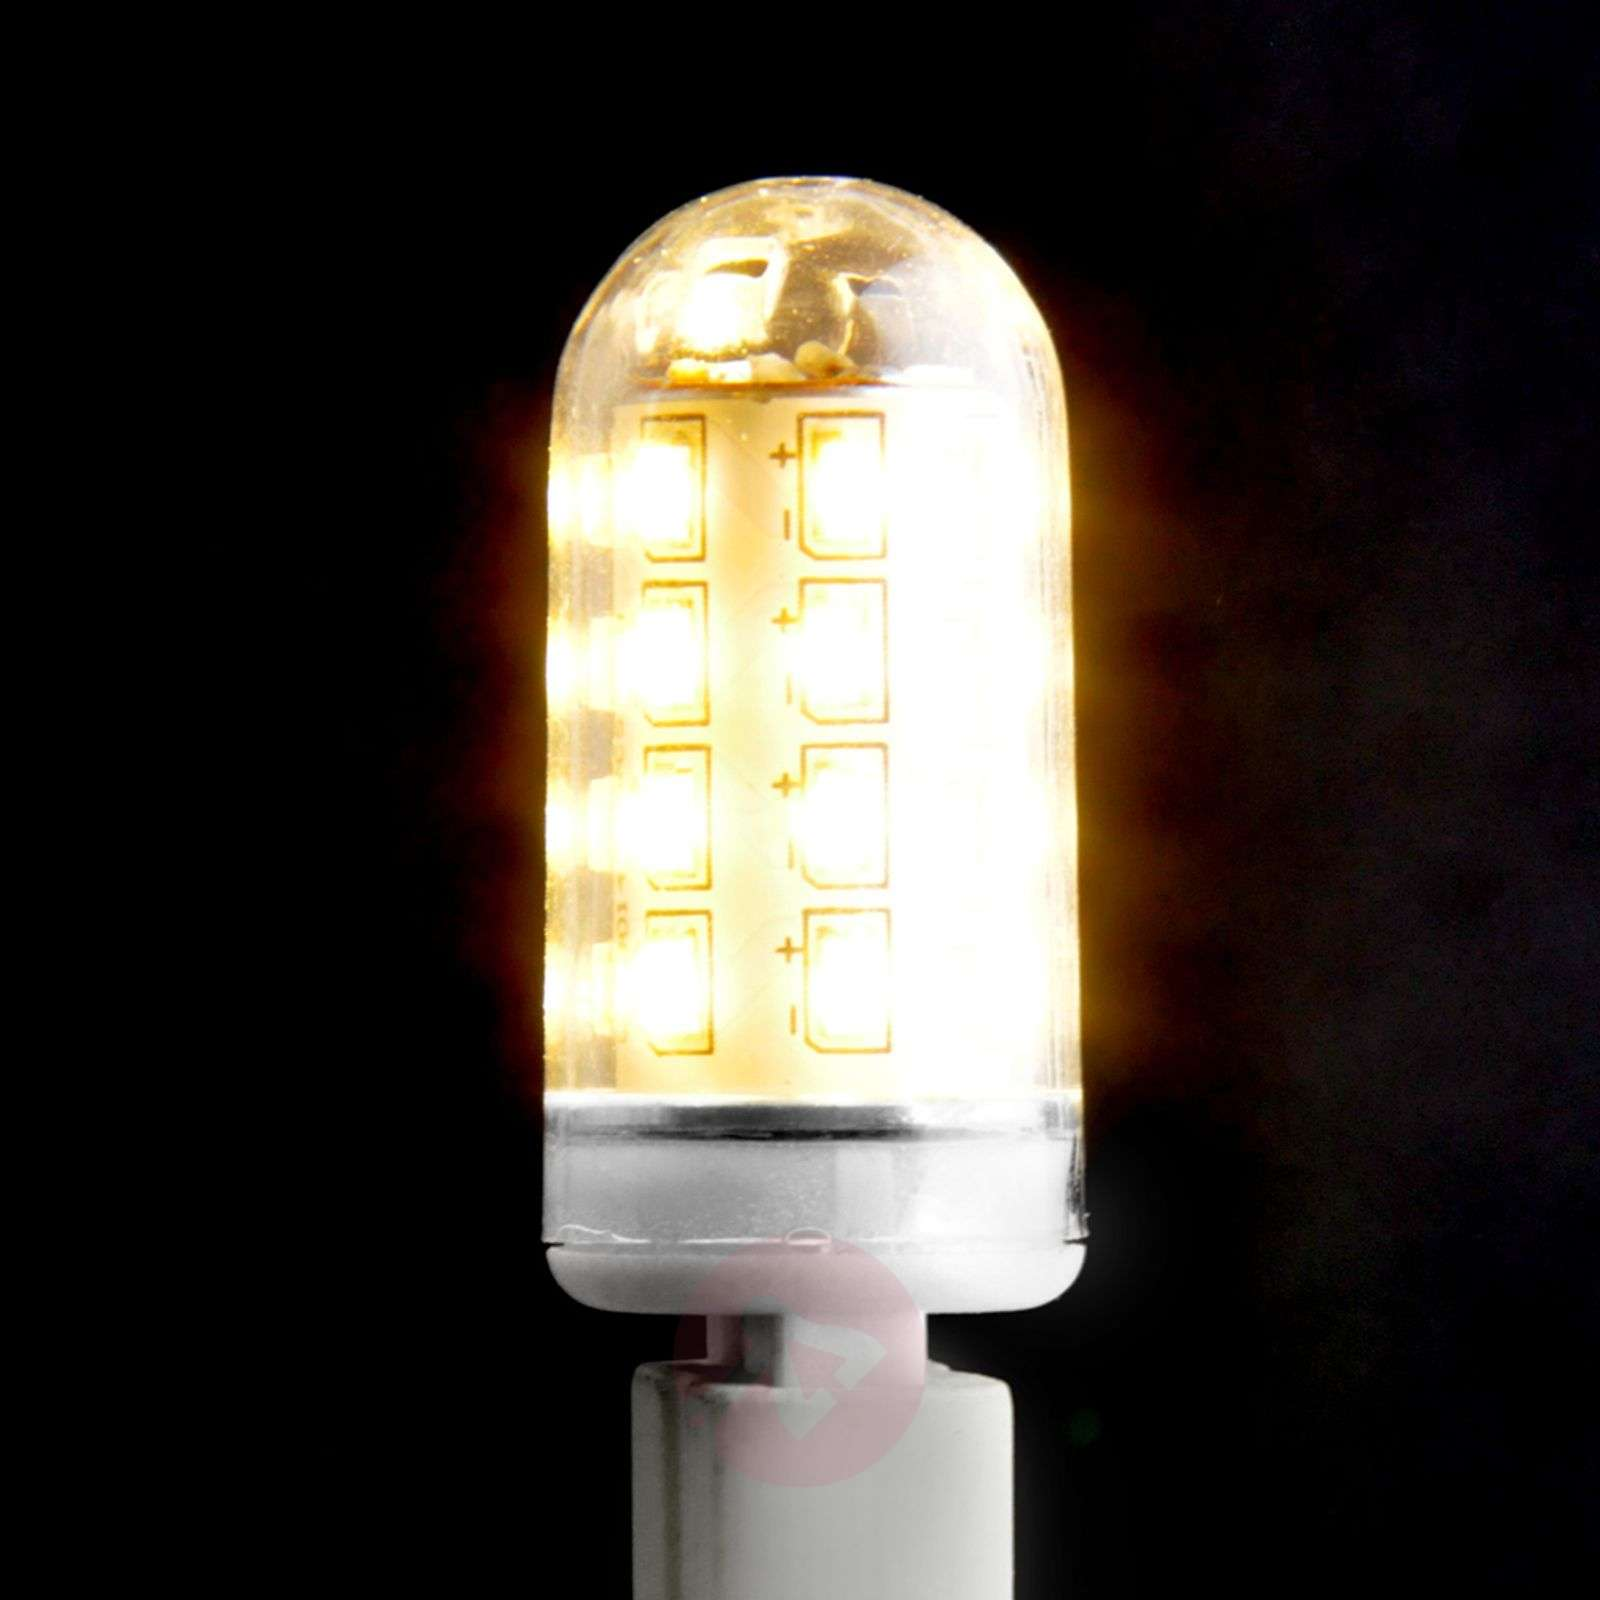 G9 3W 830 LED lamp in tube form clear-9620006-06